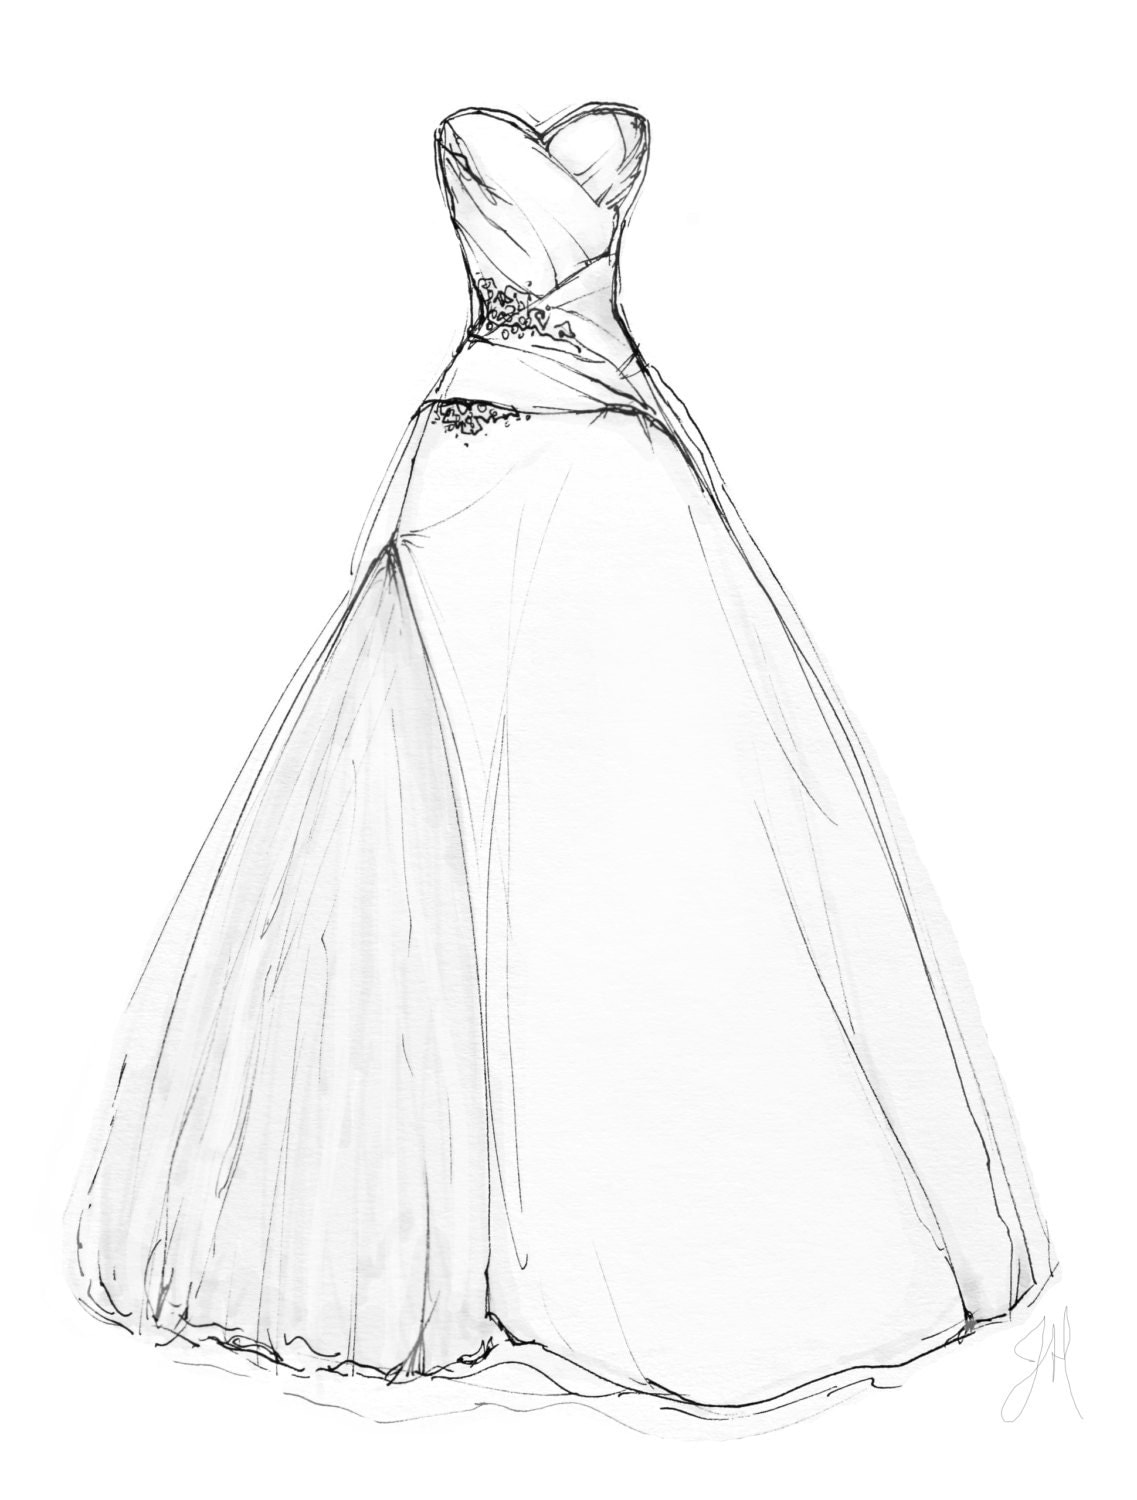 custom wedding dress illustration portrait 8x10